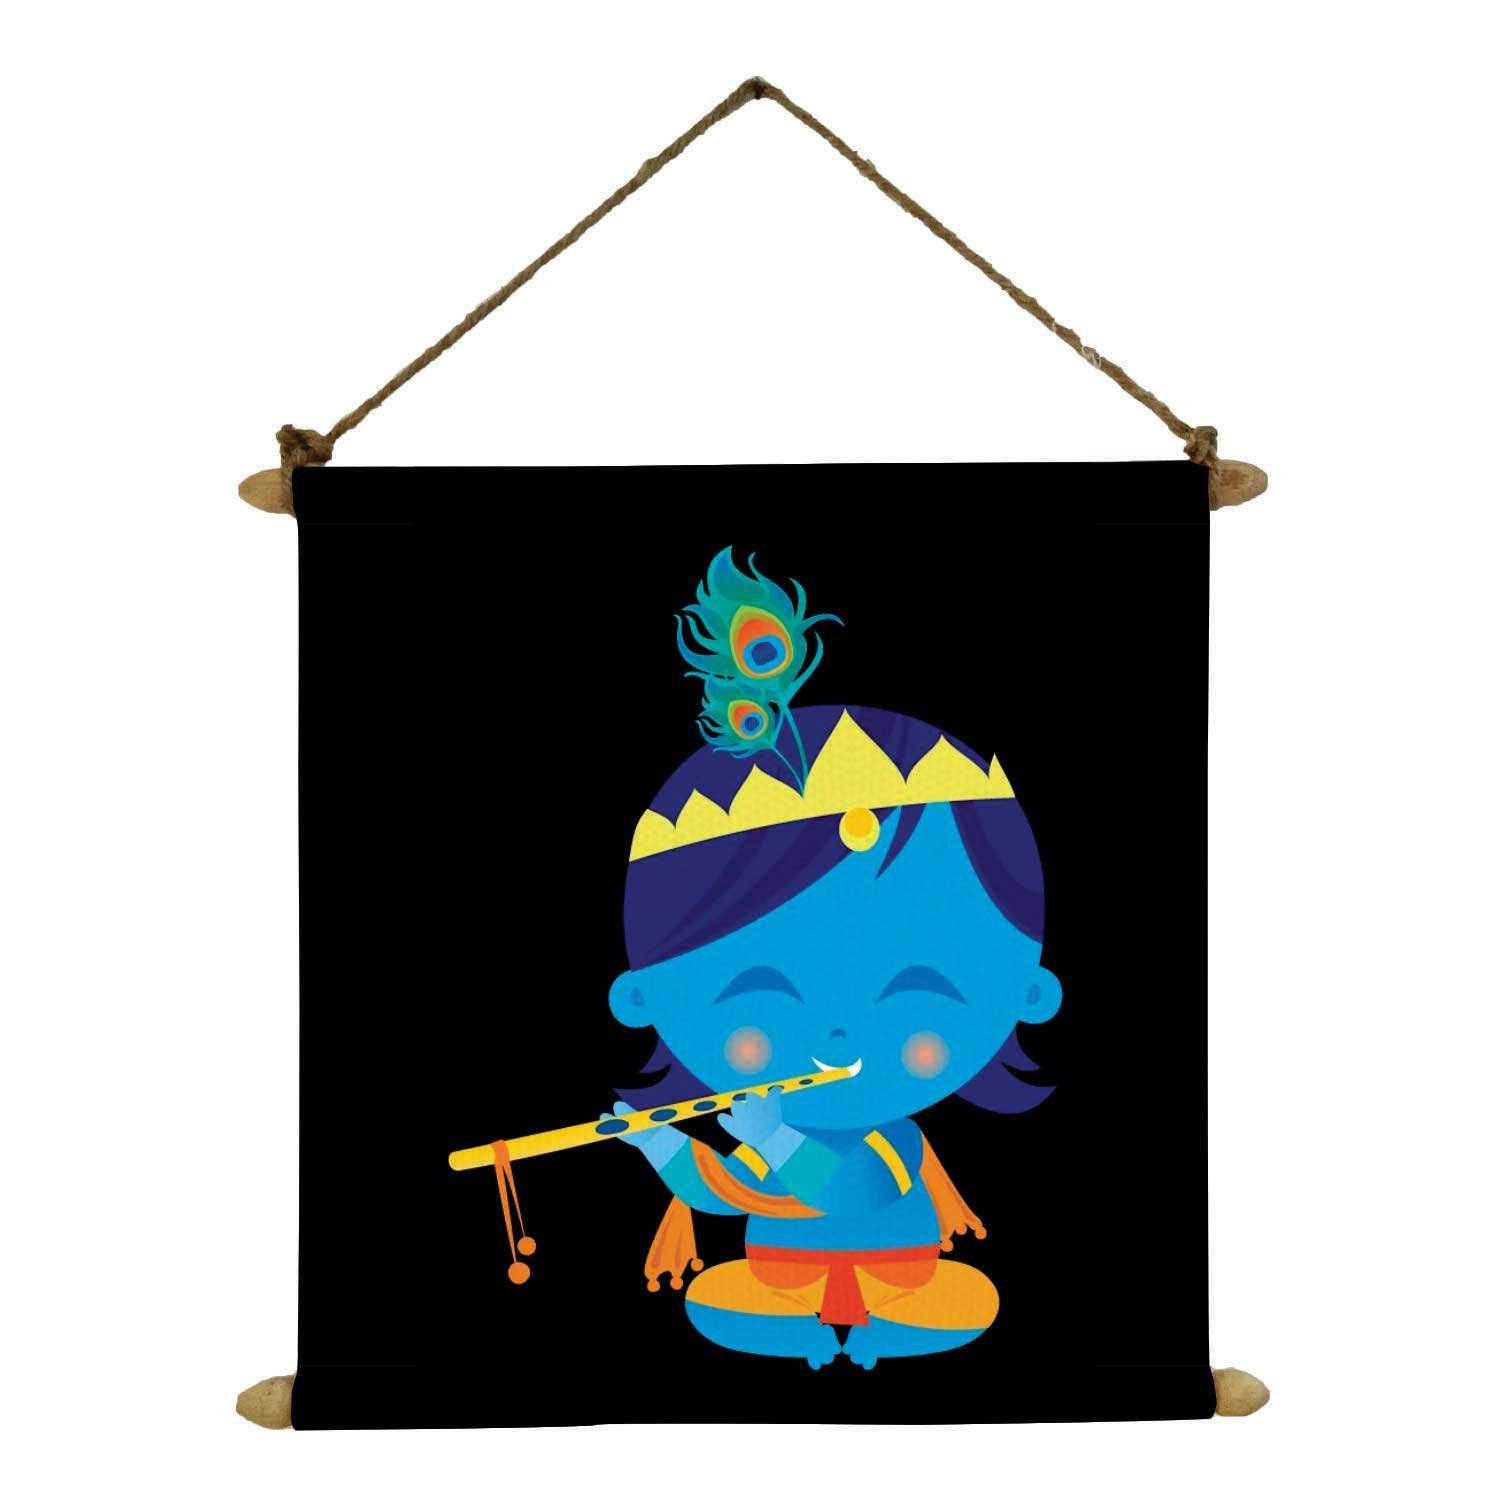 Yaya Cafe Cute Bal Krishna Poster Wall Painting Hanging Scroll Canvas 24 X 24 Inches Amazon In Home Kitchen